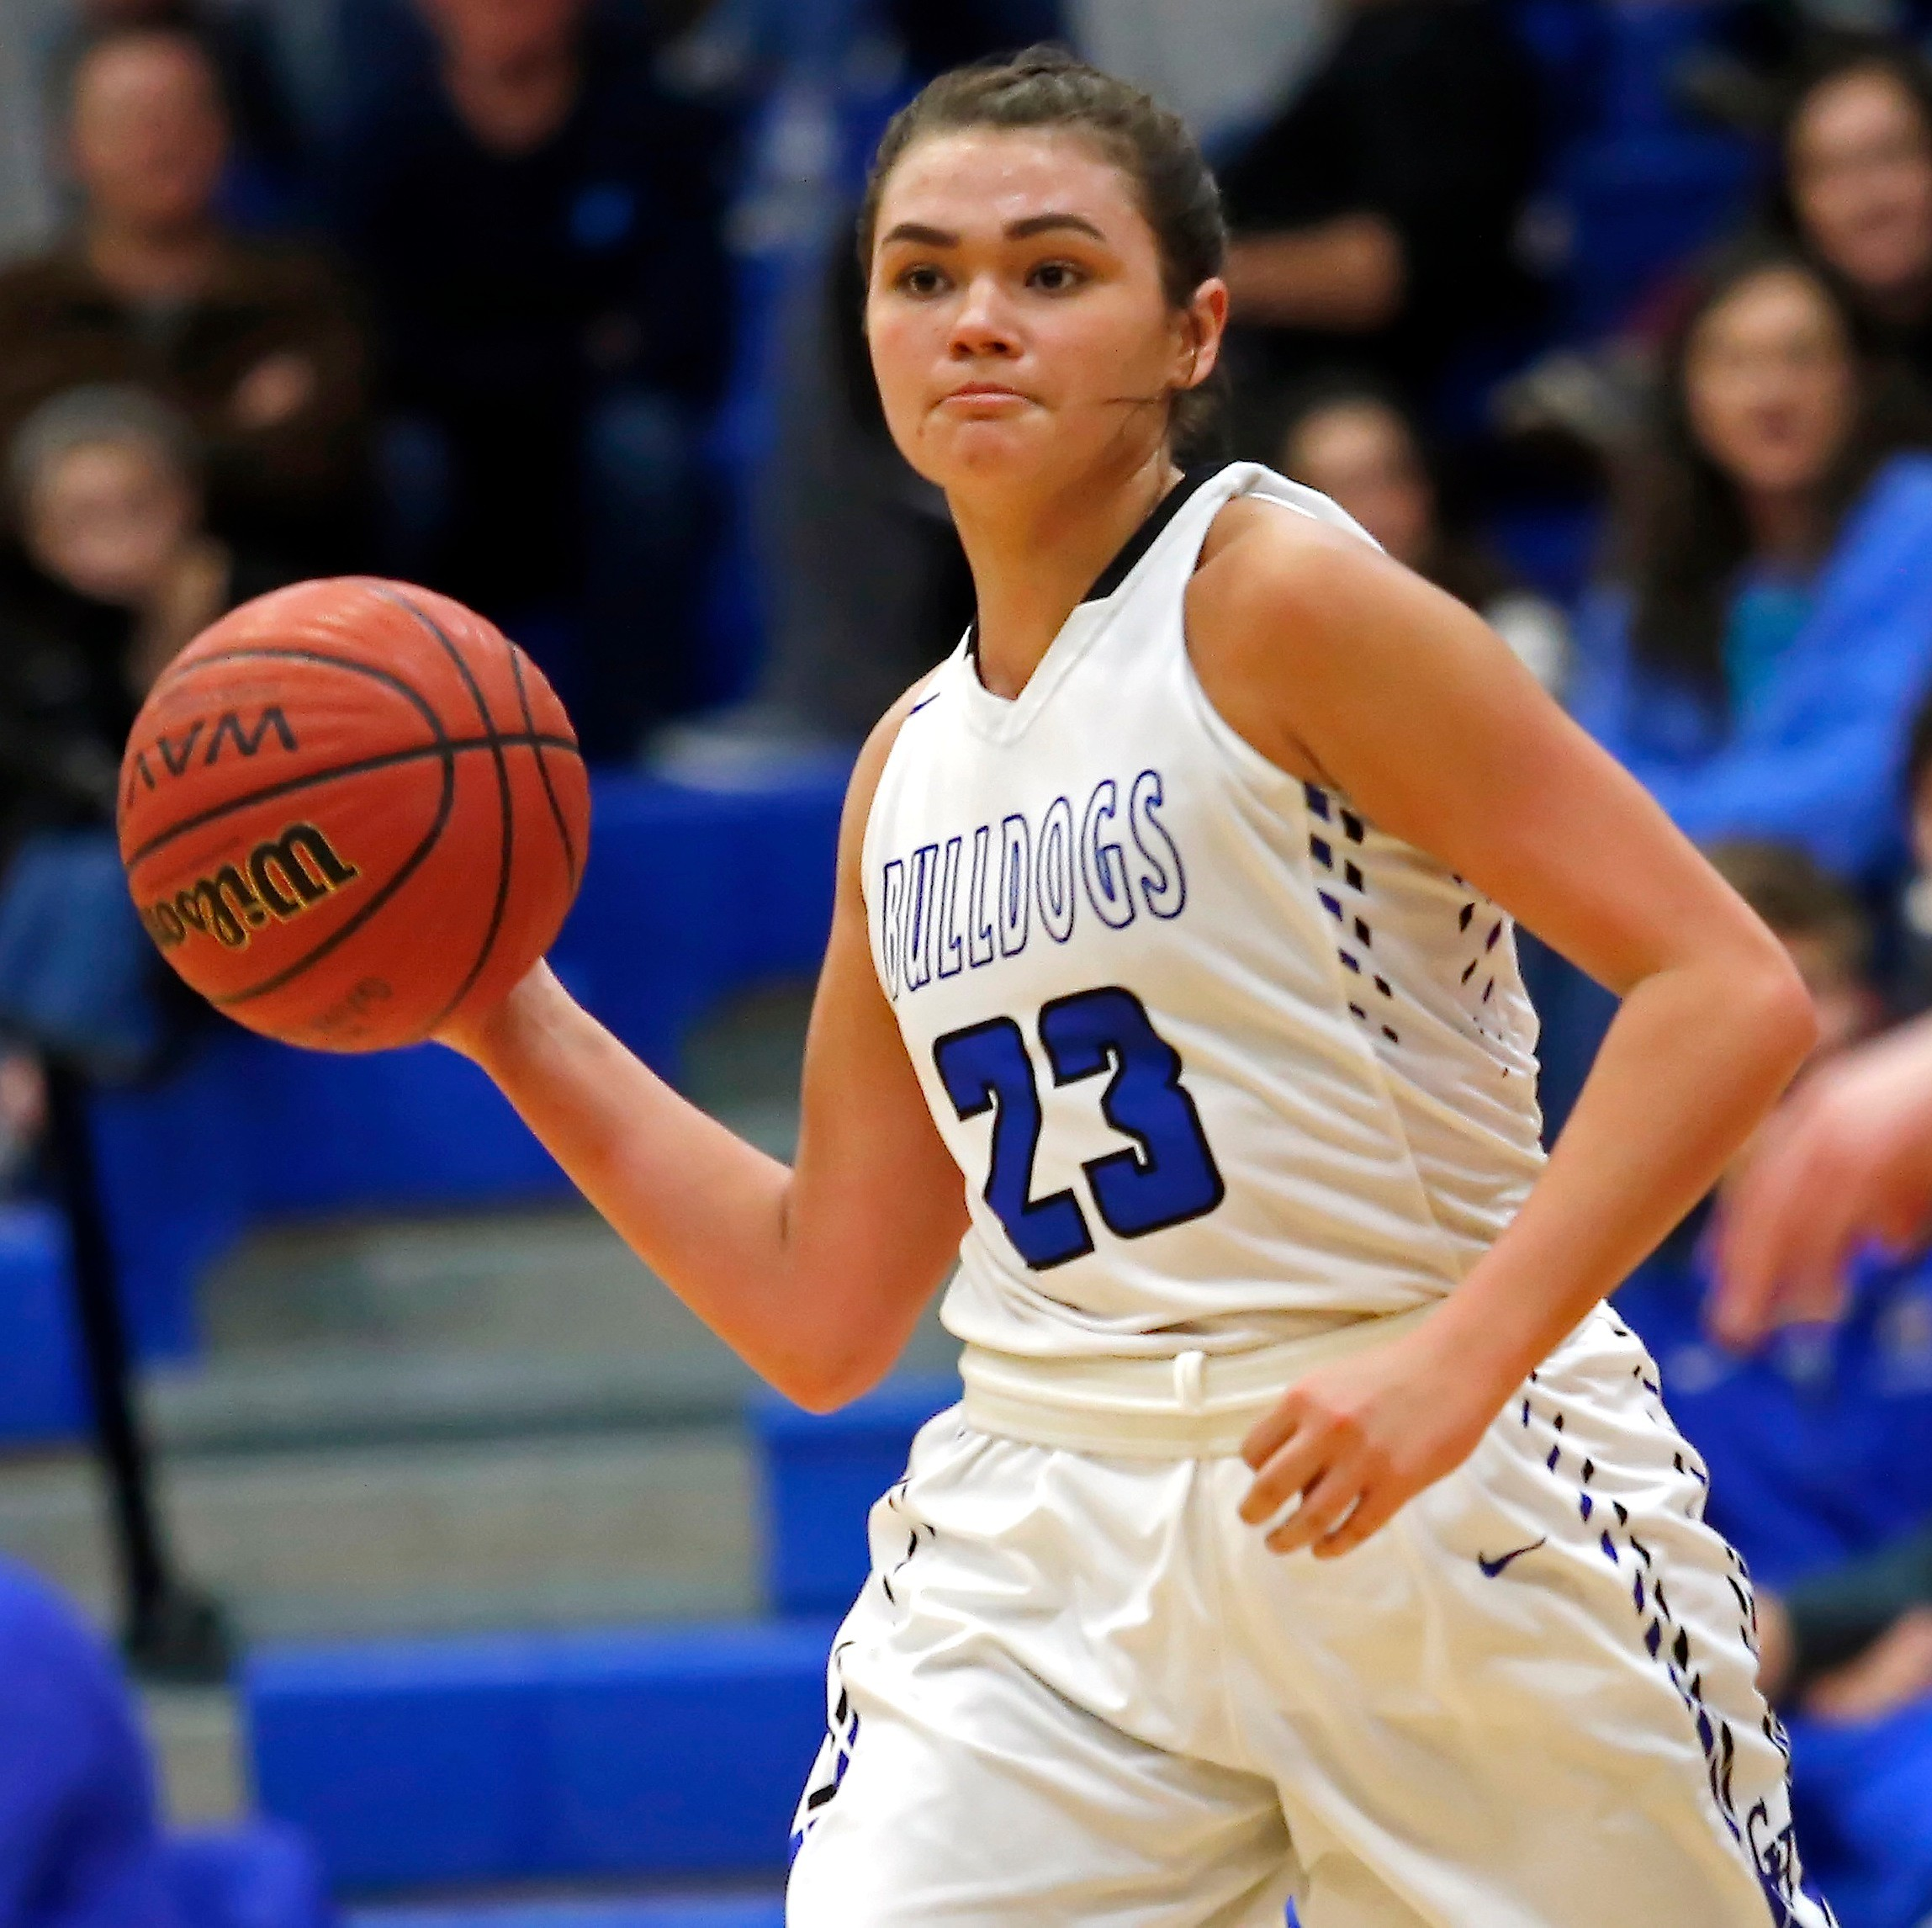 Carbon Hill's Molly Kate Atkins had 13 points, five assists and four steals in the Bulldogs' 41-37 win over Oakman in the 3A, Area 12 Tournament on Monday.